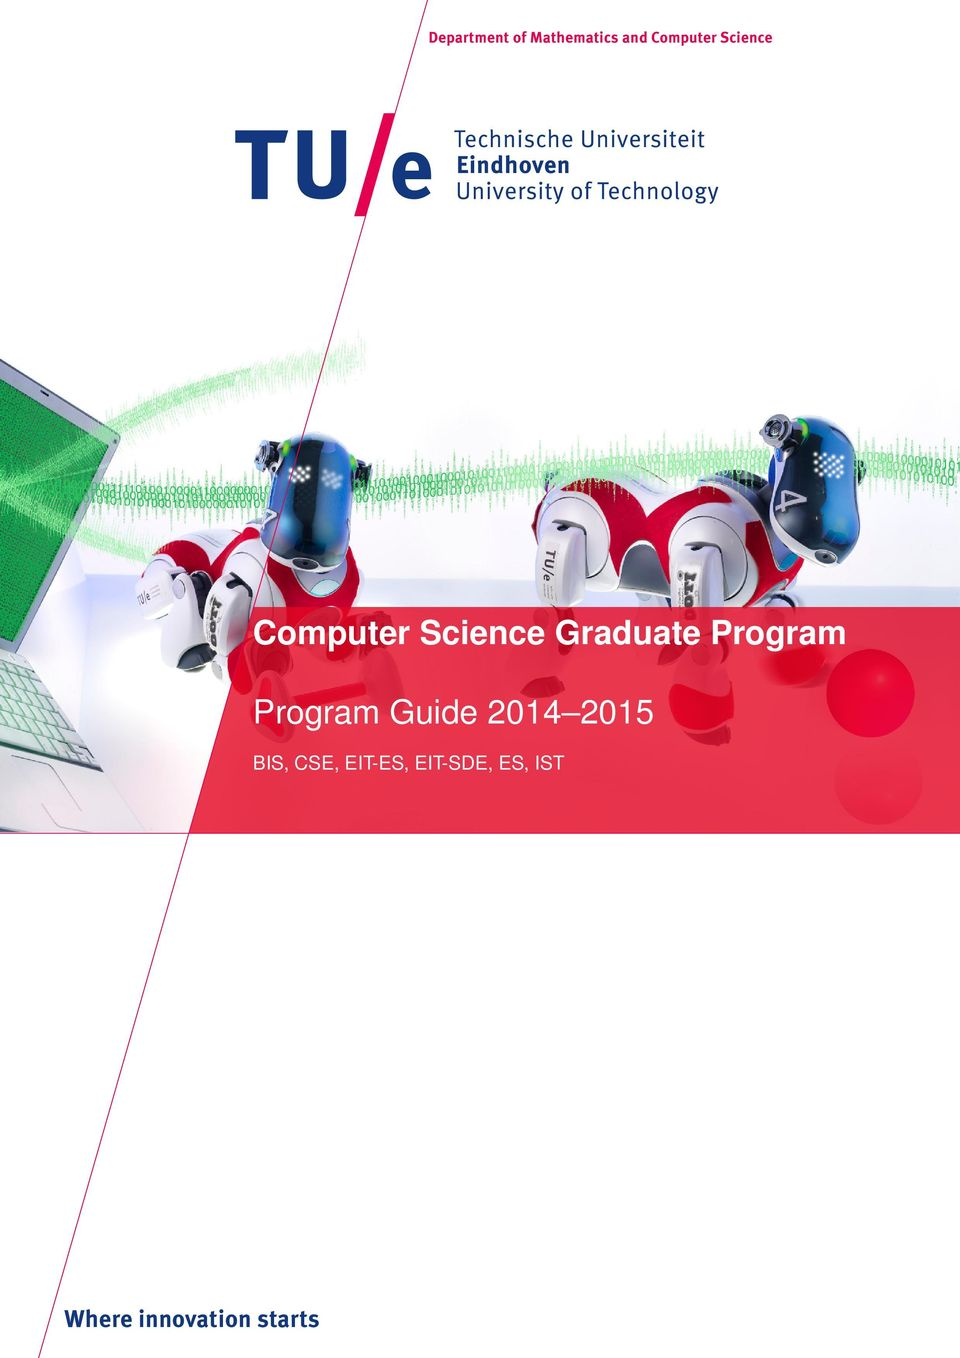 Program Program Guide 2014 2015 BIS,